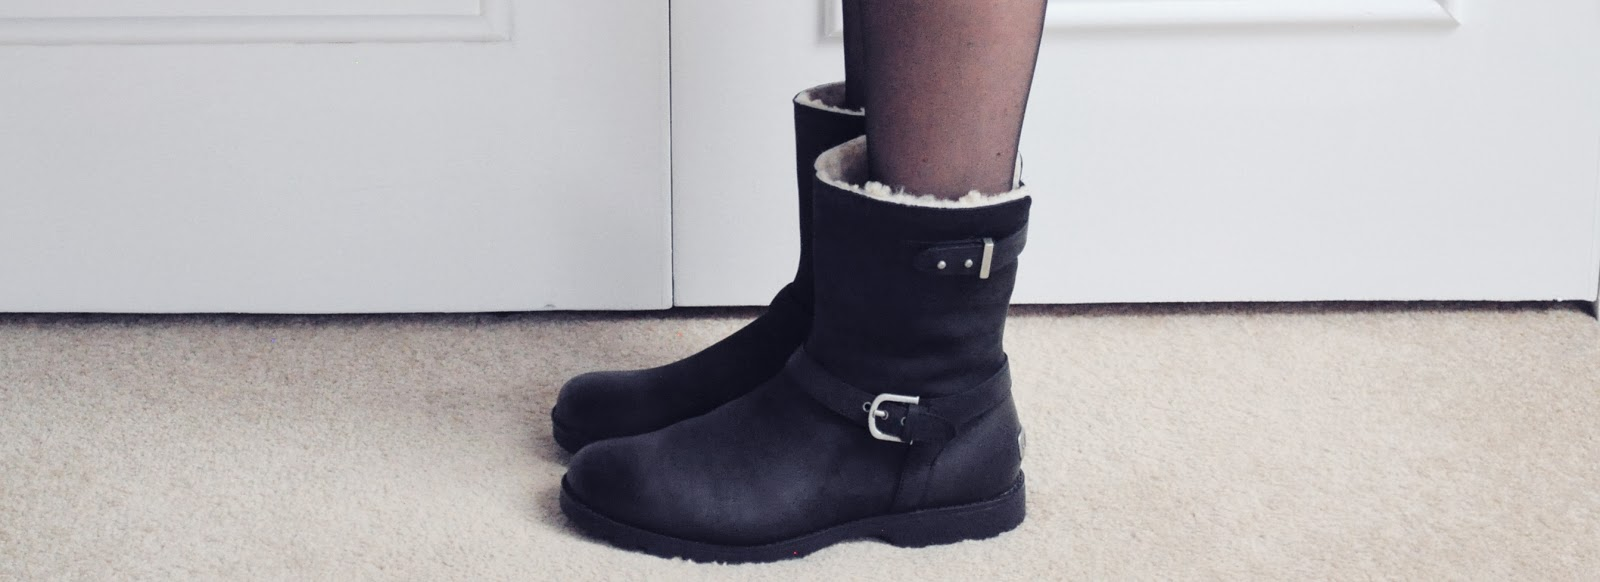 c70f70dc53089 How To Spot Fake Ugg Boots 2016 - cheap watches mgc-gas.com